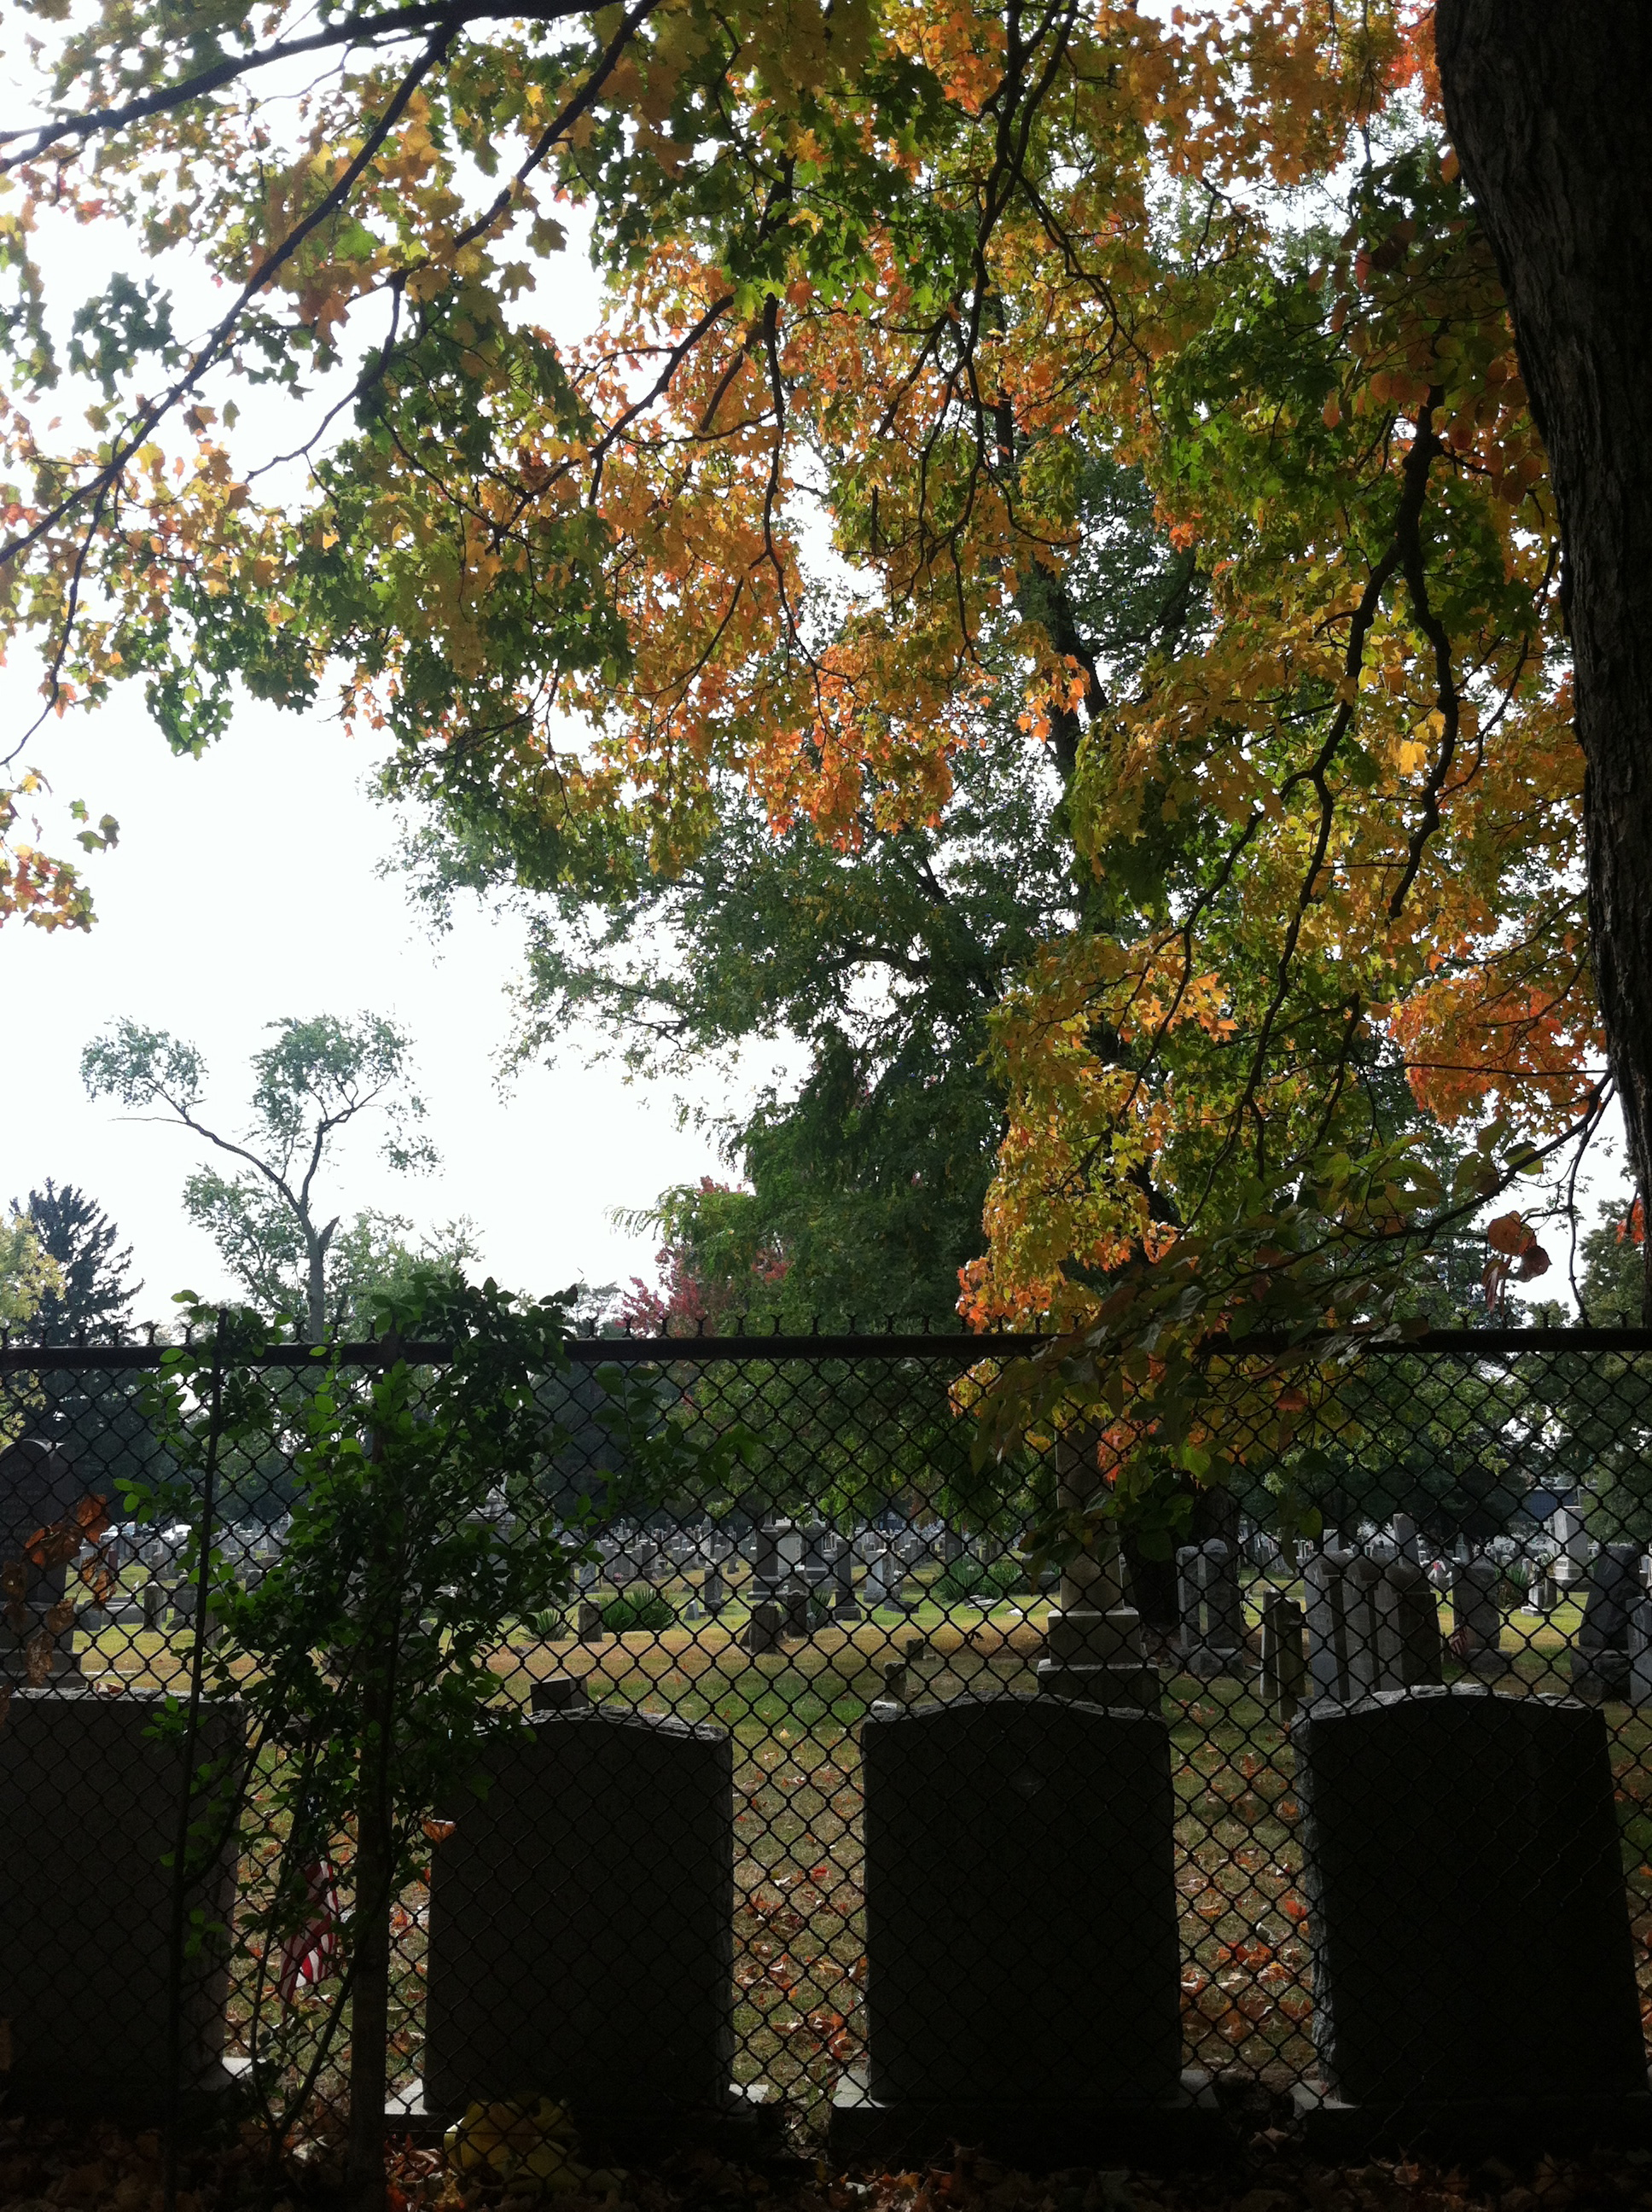 And then we went to a Jersey Cemetary Oct 19, 2013 157